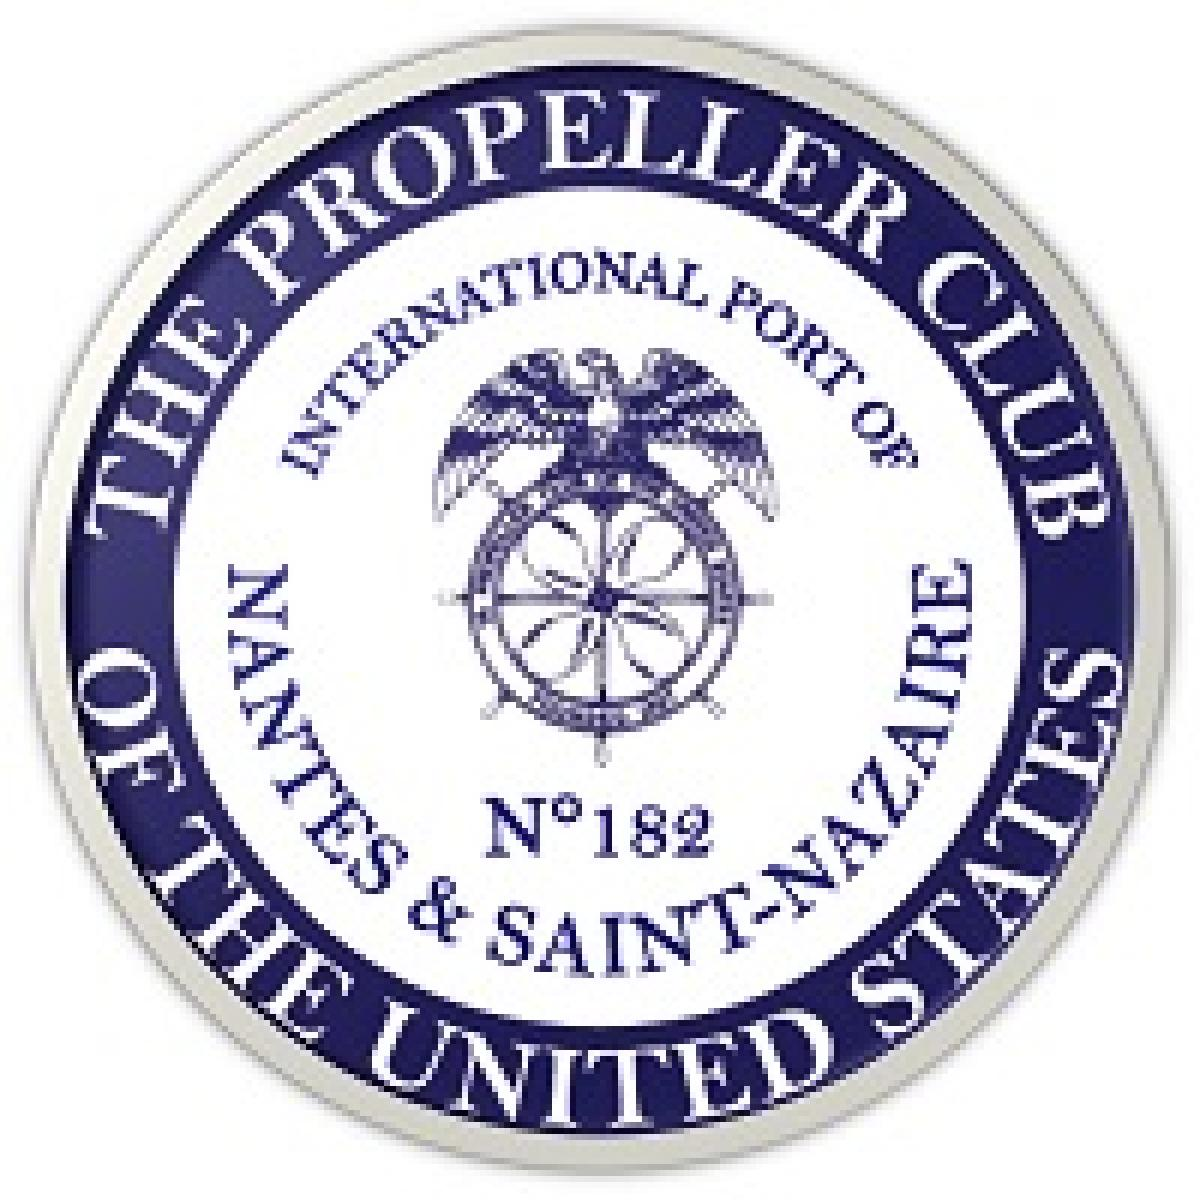 CLUB PROPELLER NANTES AUGUSTIN MOULINAS AVOCAT